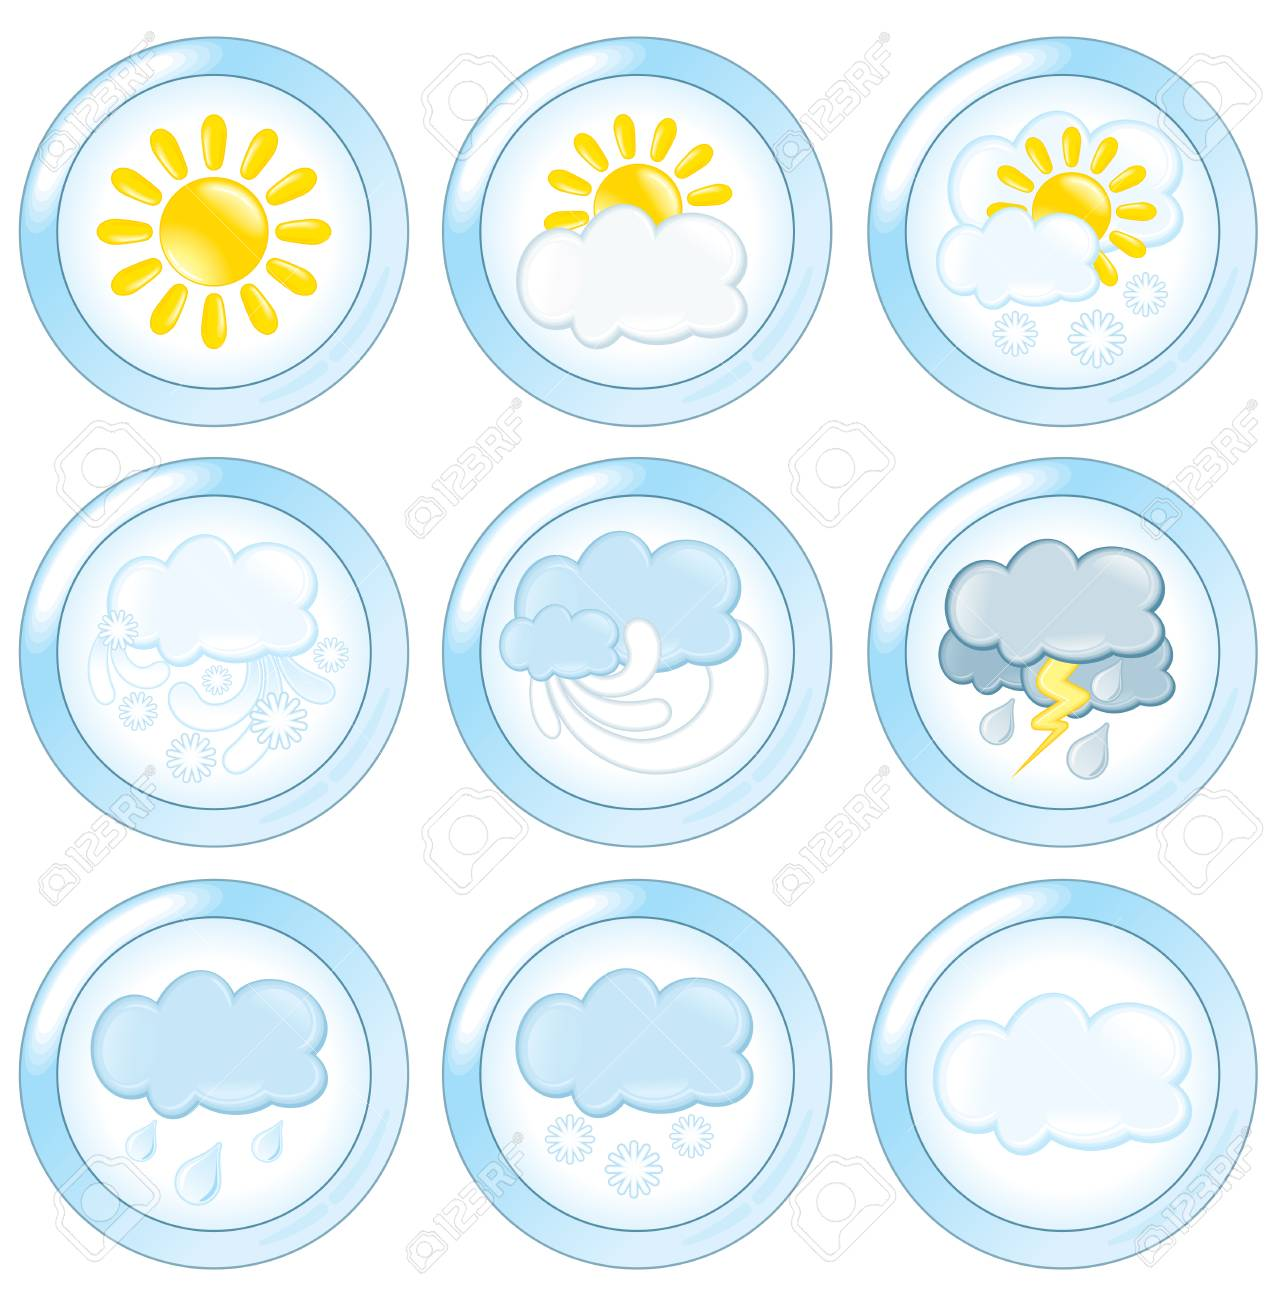 weather forecast icons set. Stock Vector - 7783069